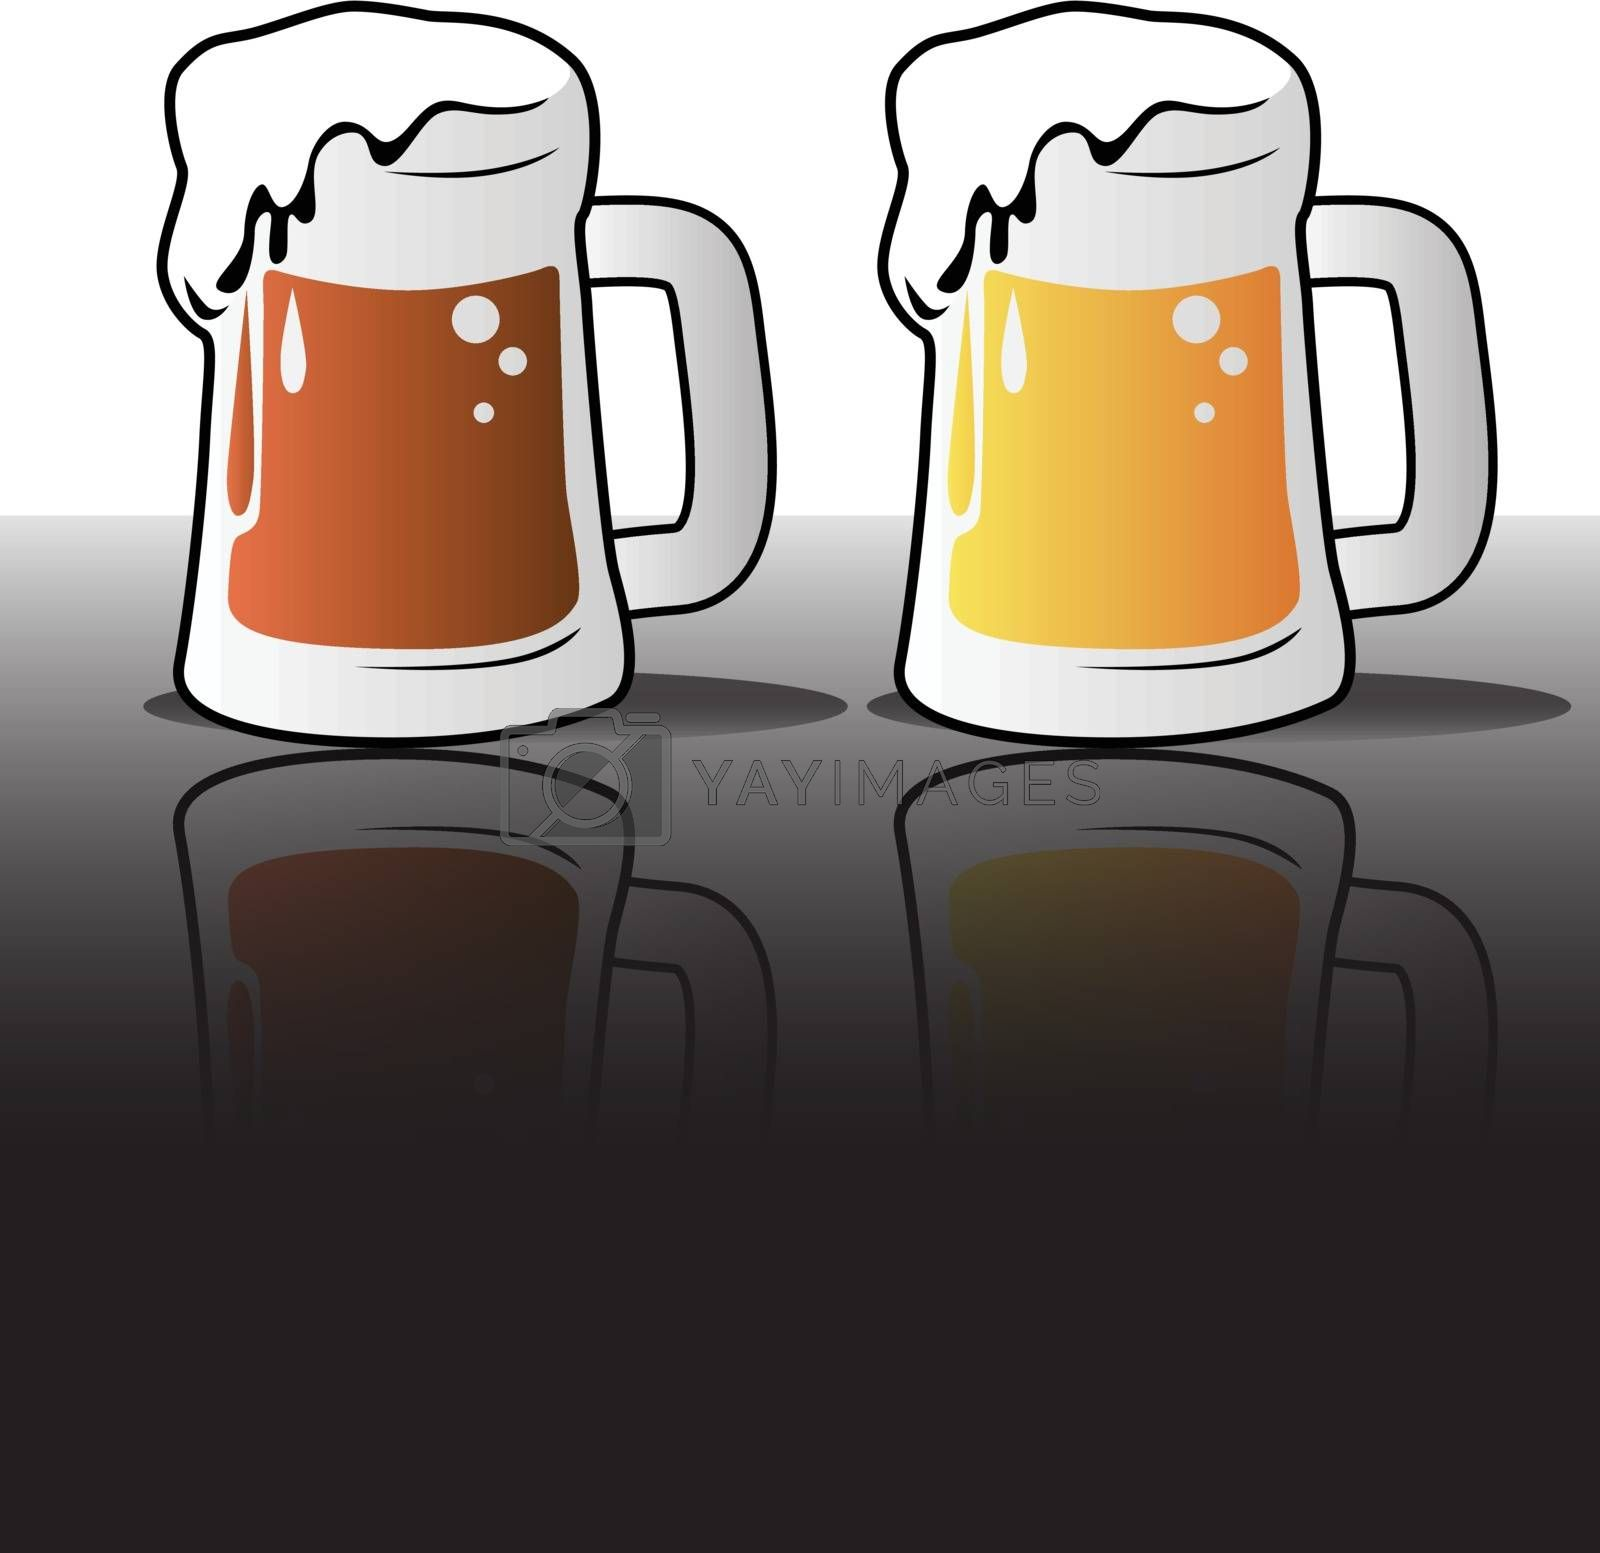 Royalty free image of Beer Icons by graphicgeoff